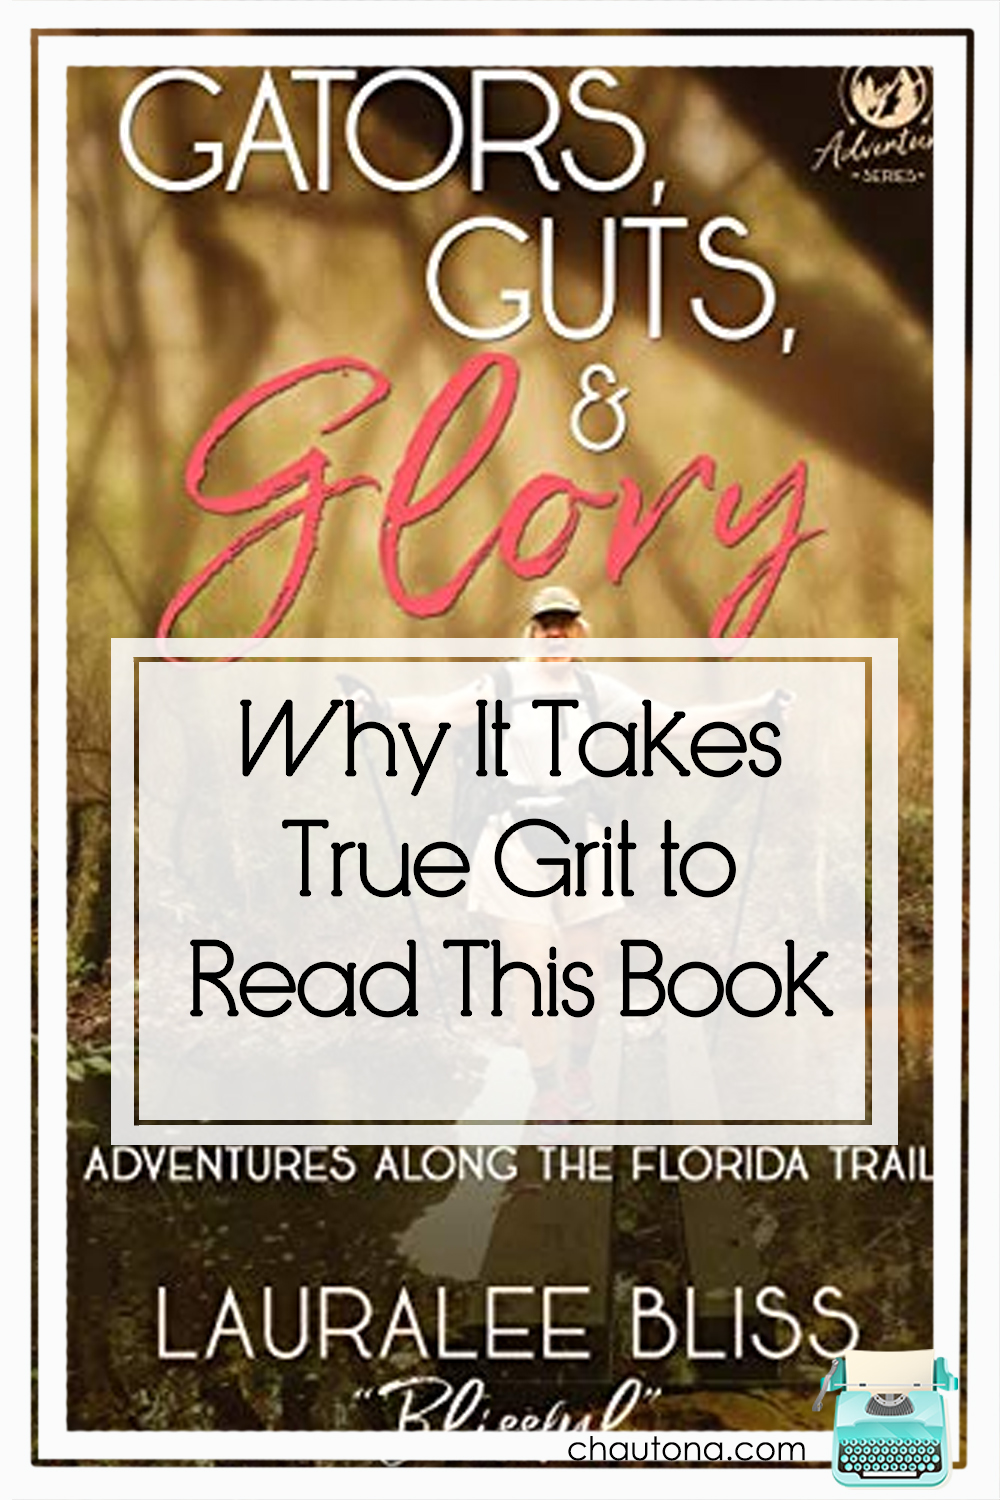 Gators, Guts, and Glory Why It Takes True Grit to Read This Book